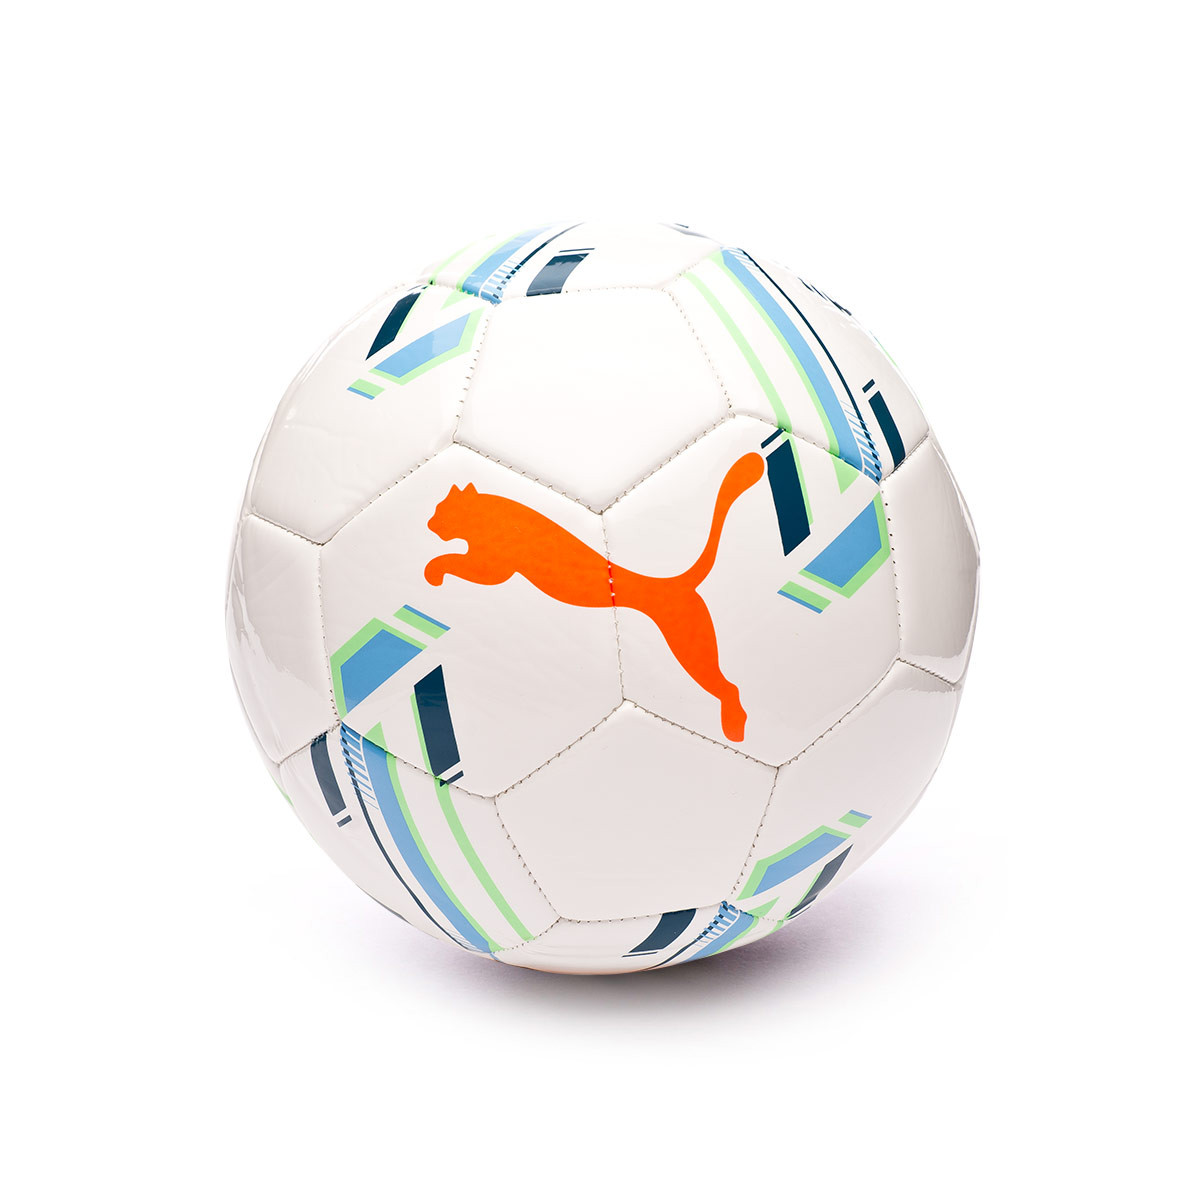 Mutuo cantante Disciplinario  Ball Puma Futsal 1 Trainer MS Puma White-Digi-blue-Shocking Orange-Elektro  - Football store Fútbol Emotion